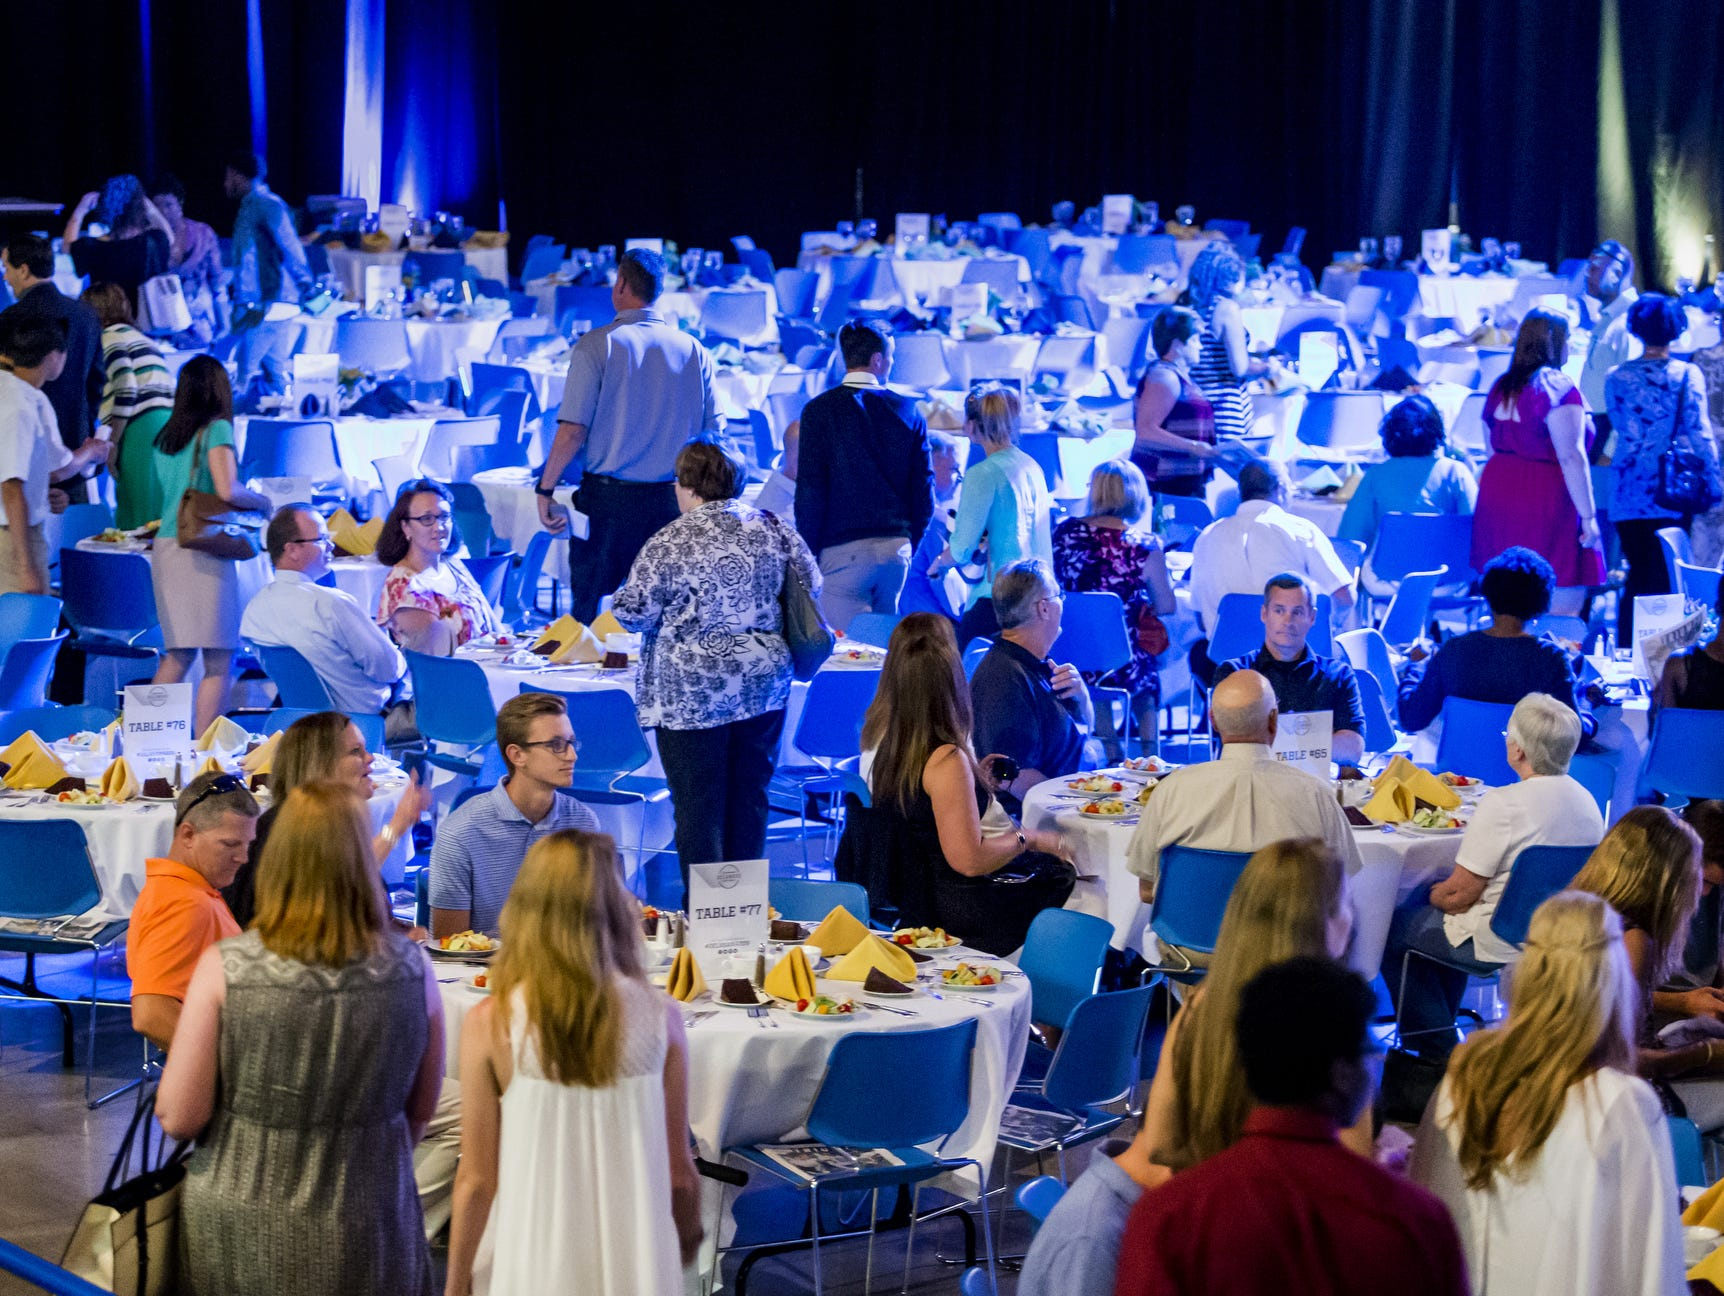 Guests at the Delaware Sports Awards banquet make their to their tables at the Bob Carpenter Center at the University of Delaware in Newark on Wednesday evening.